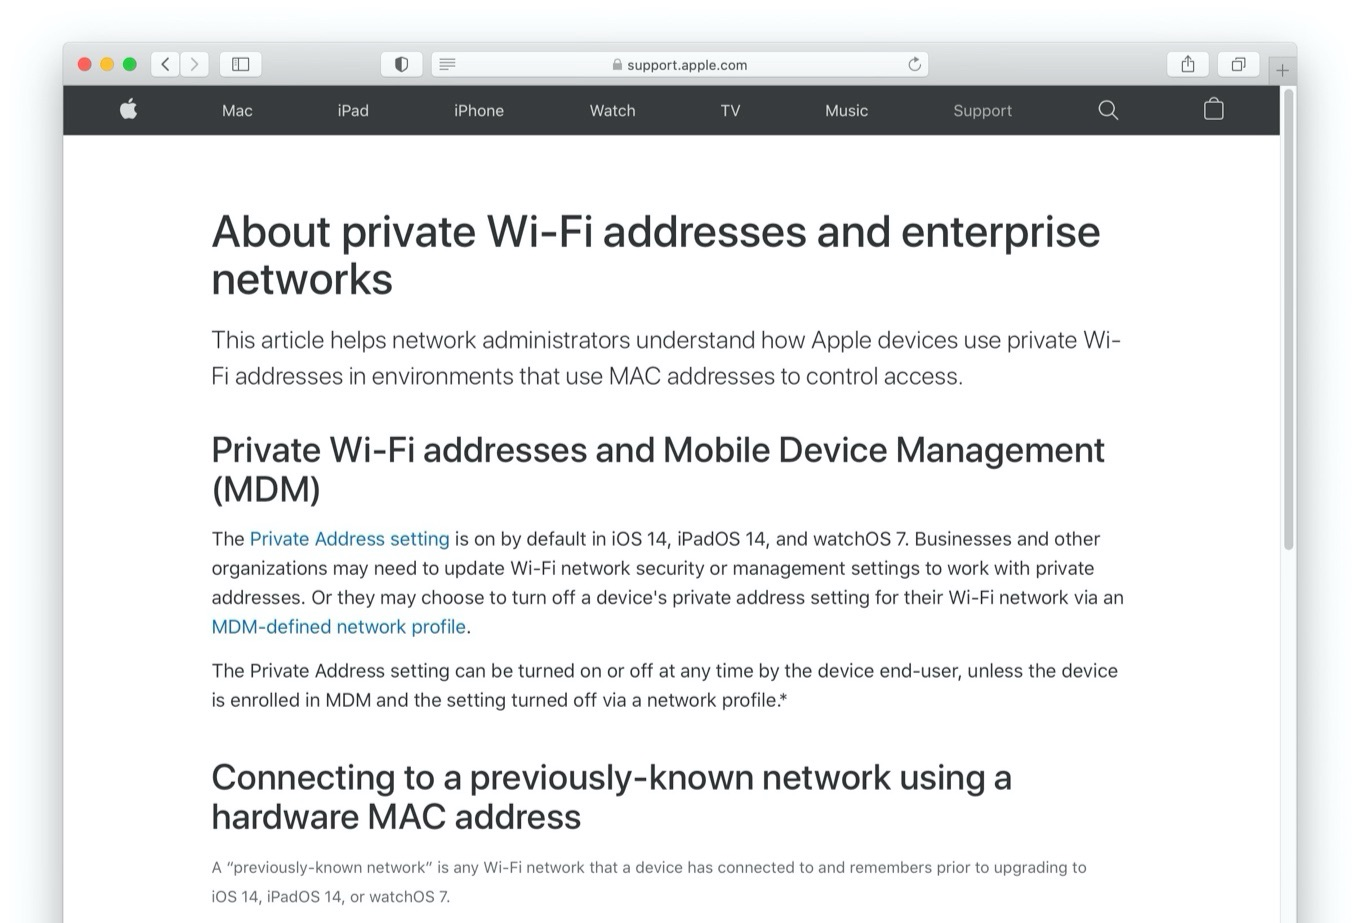 About private Wi-Fi addresses and enterprise networks